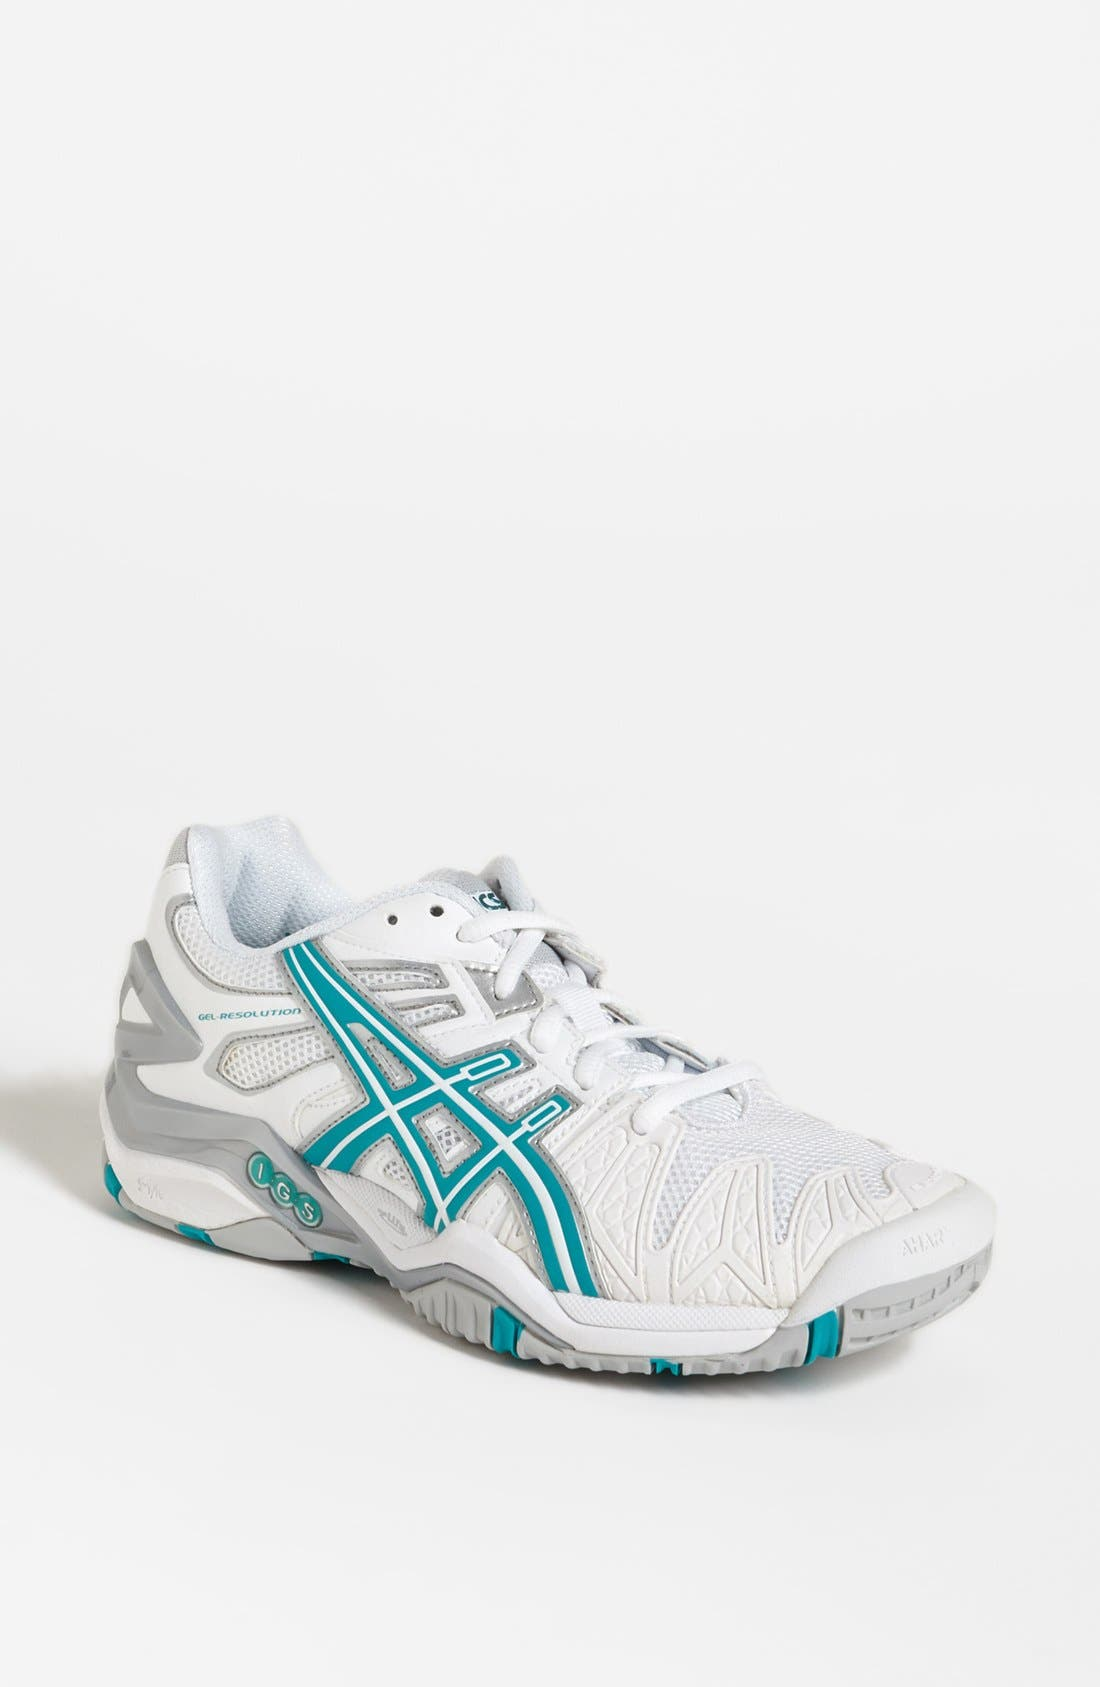 Main Image - ASICS® 'GEL-Resolution 5' Tennis Shoe (Women)(Regular Retail Price: $139.95)